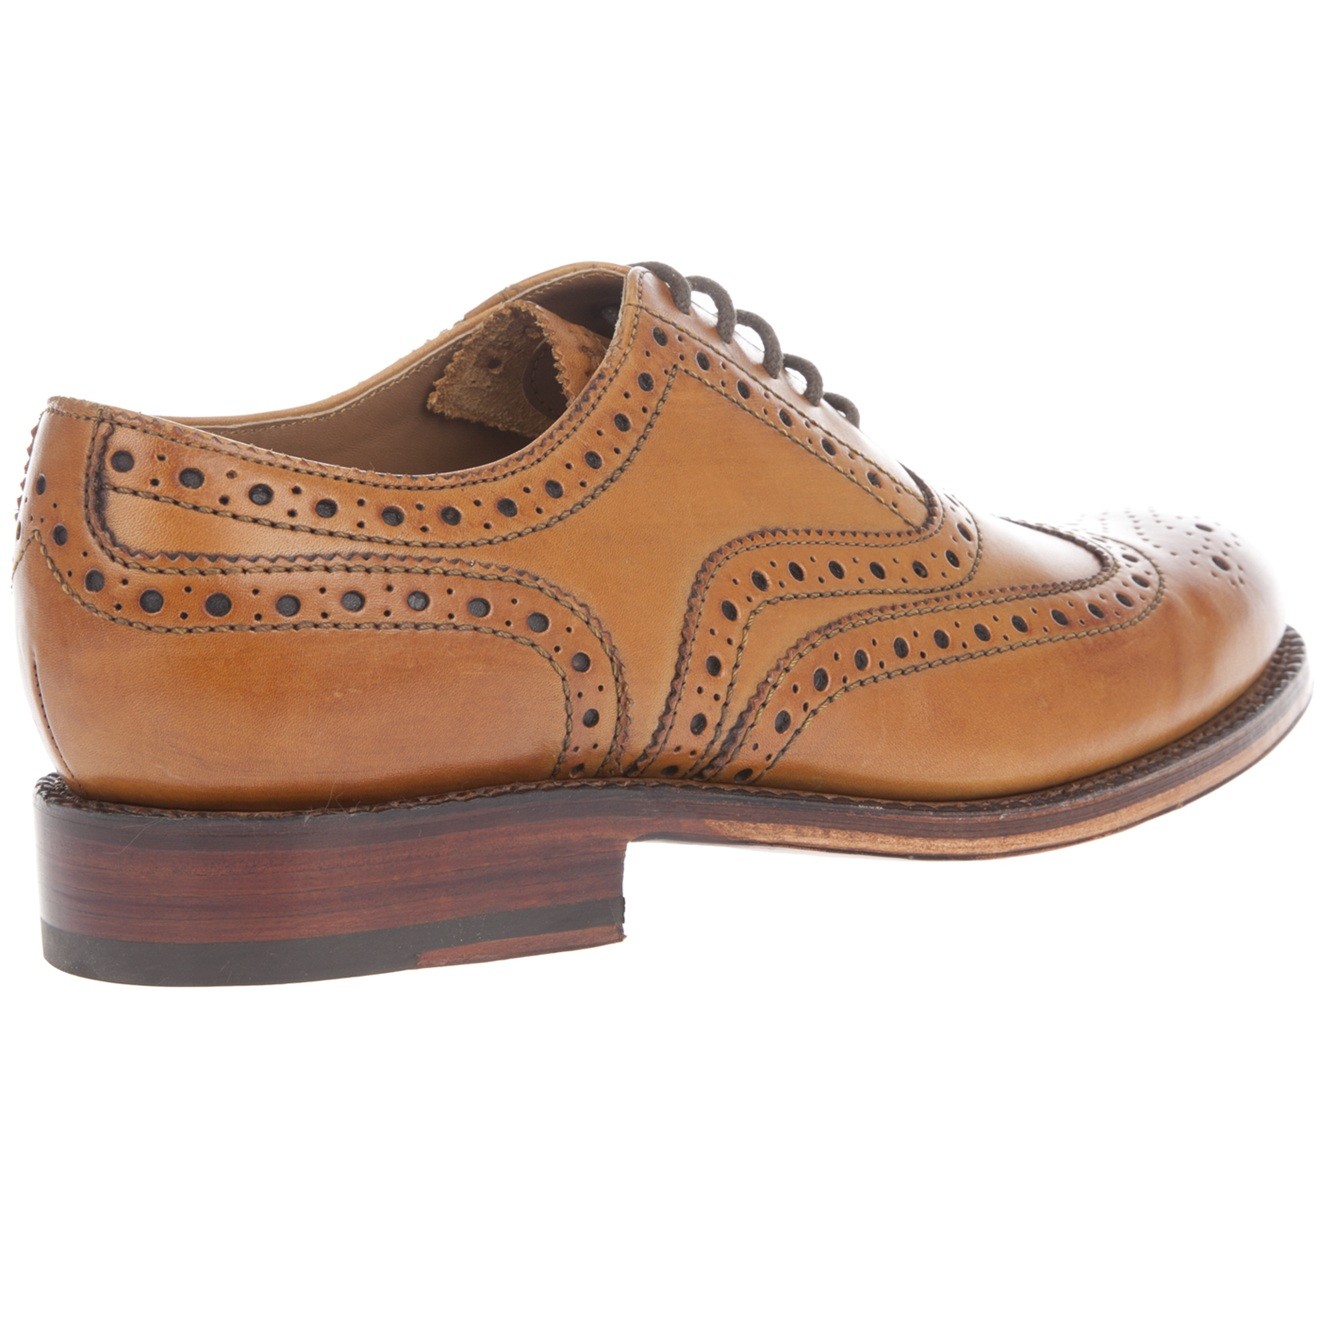 Grenson Shoes Online